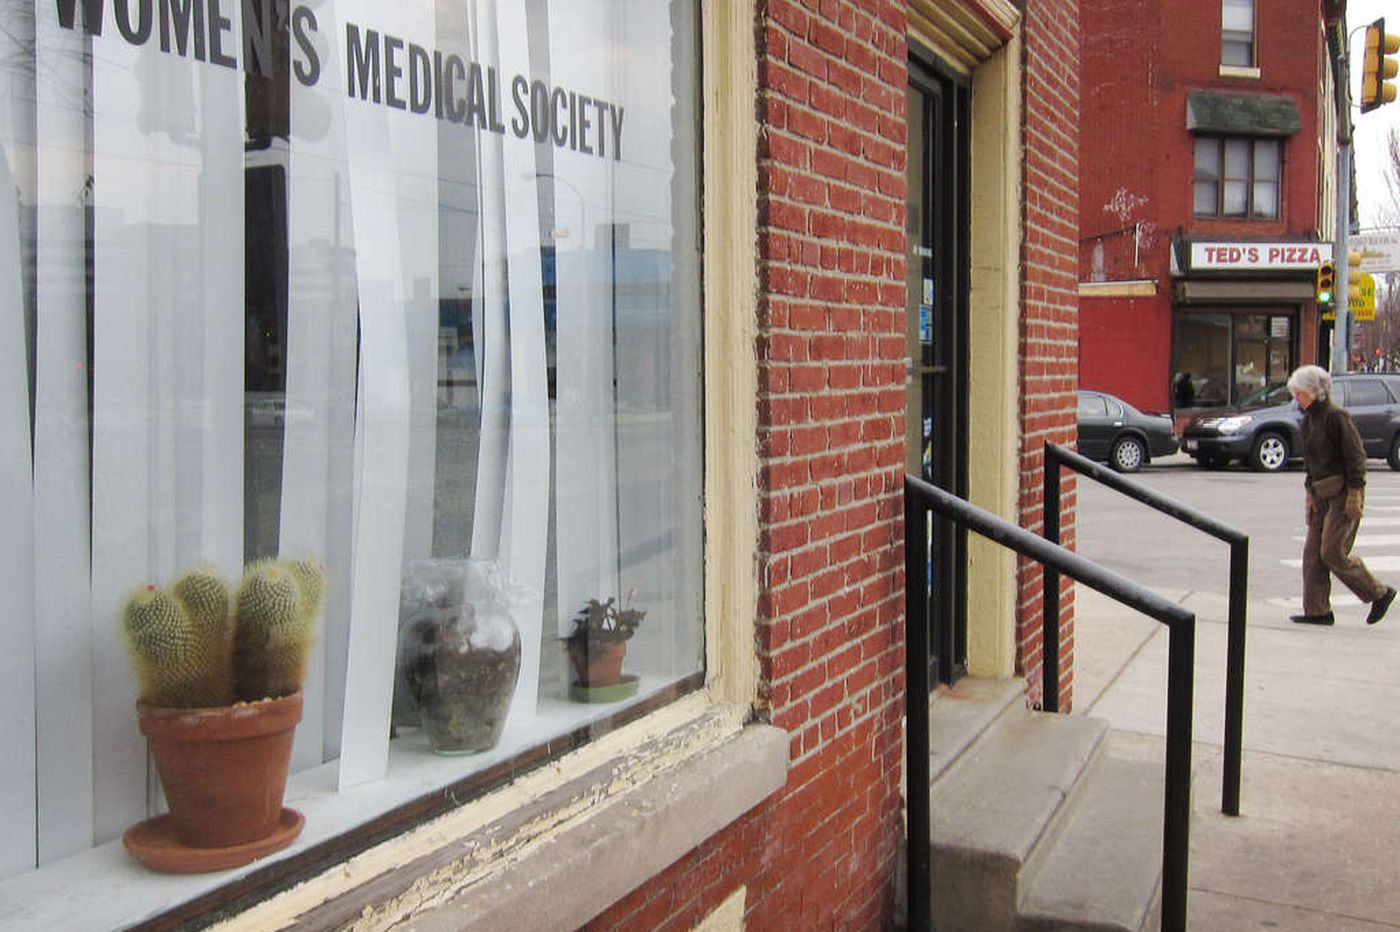 Abortion doc charged by feds with dealing drugs, too